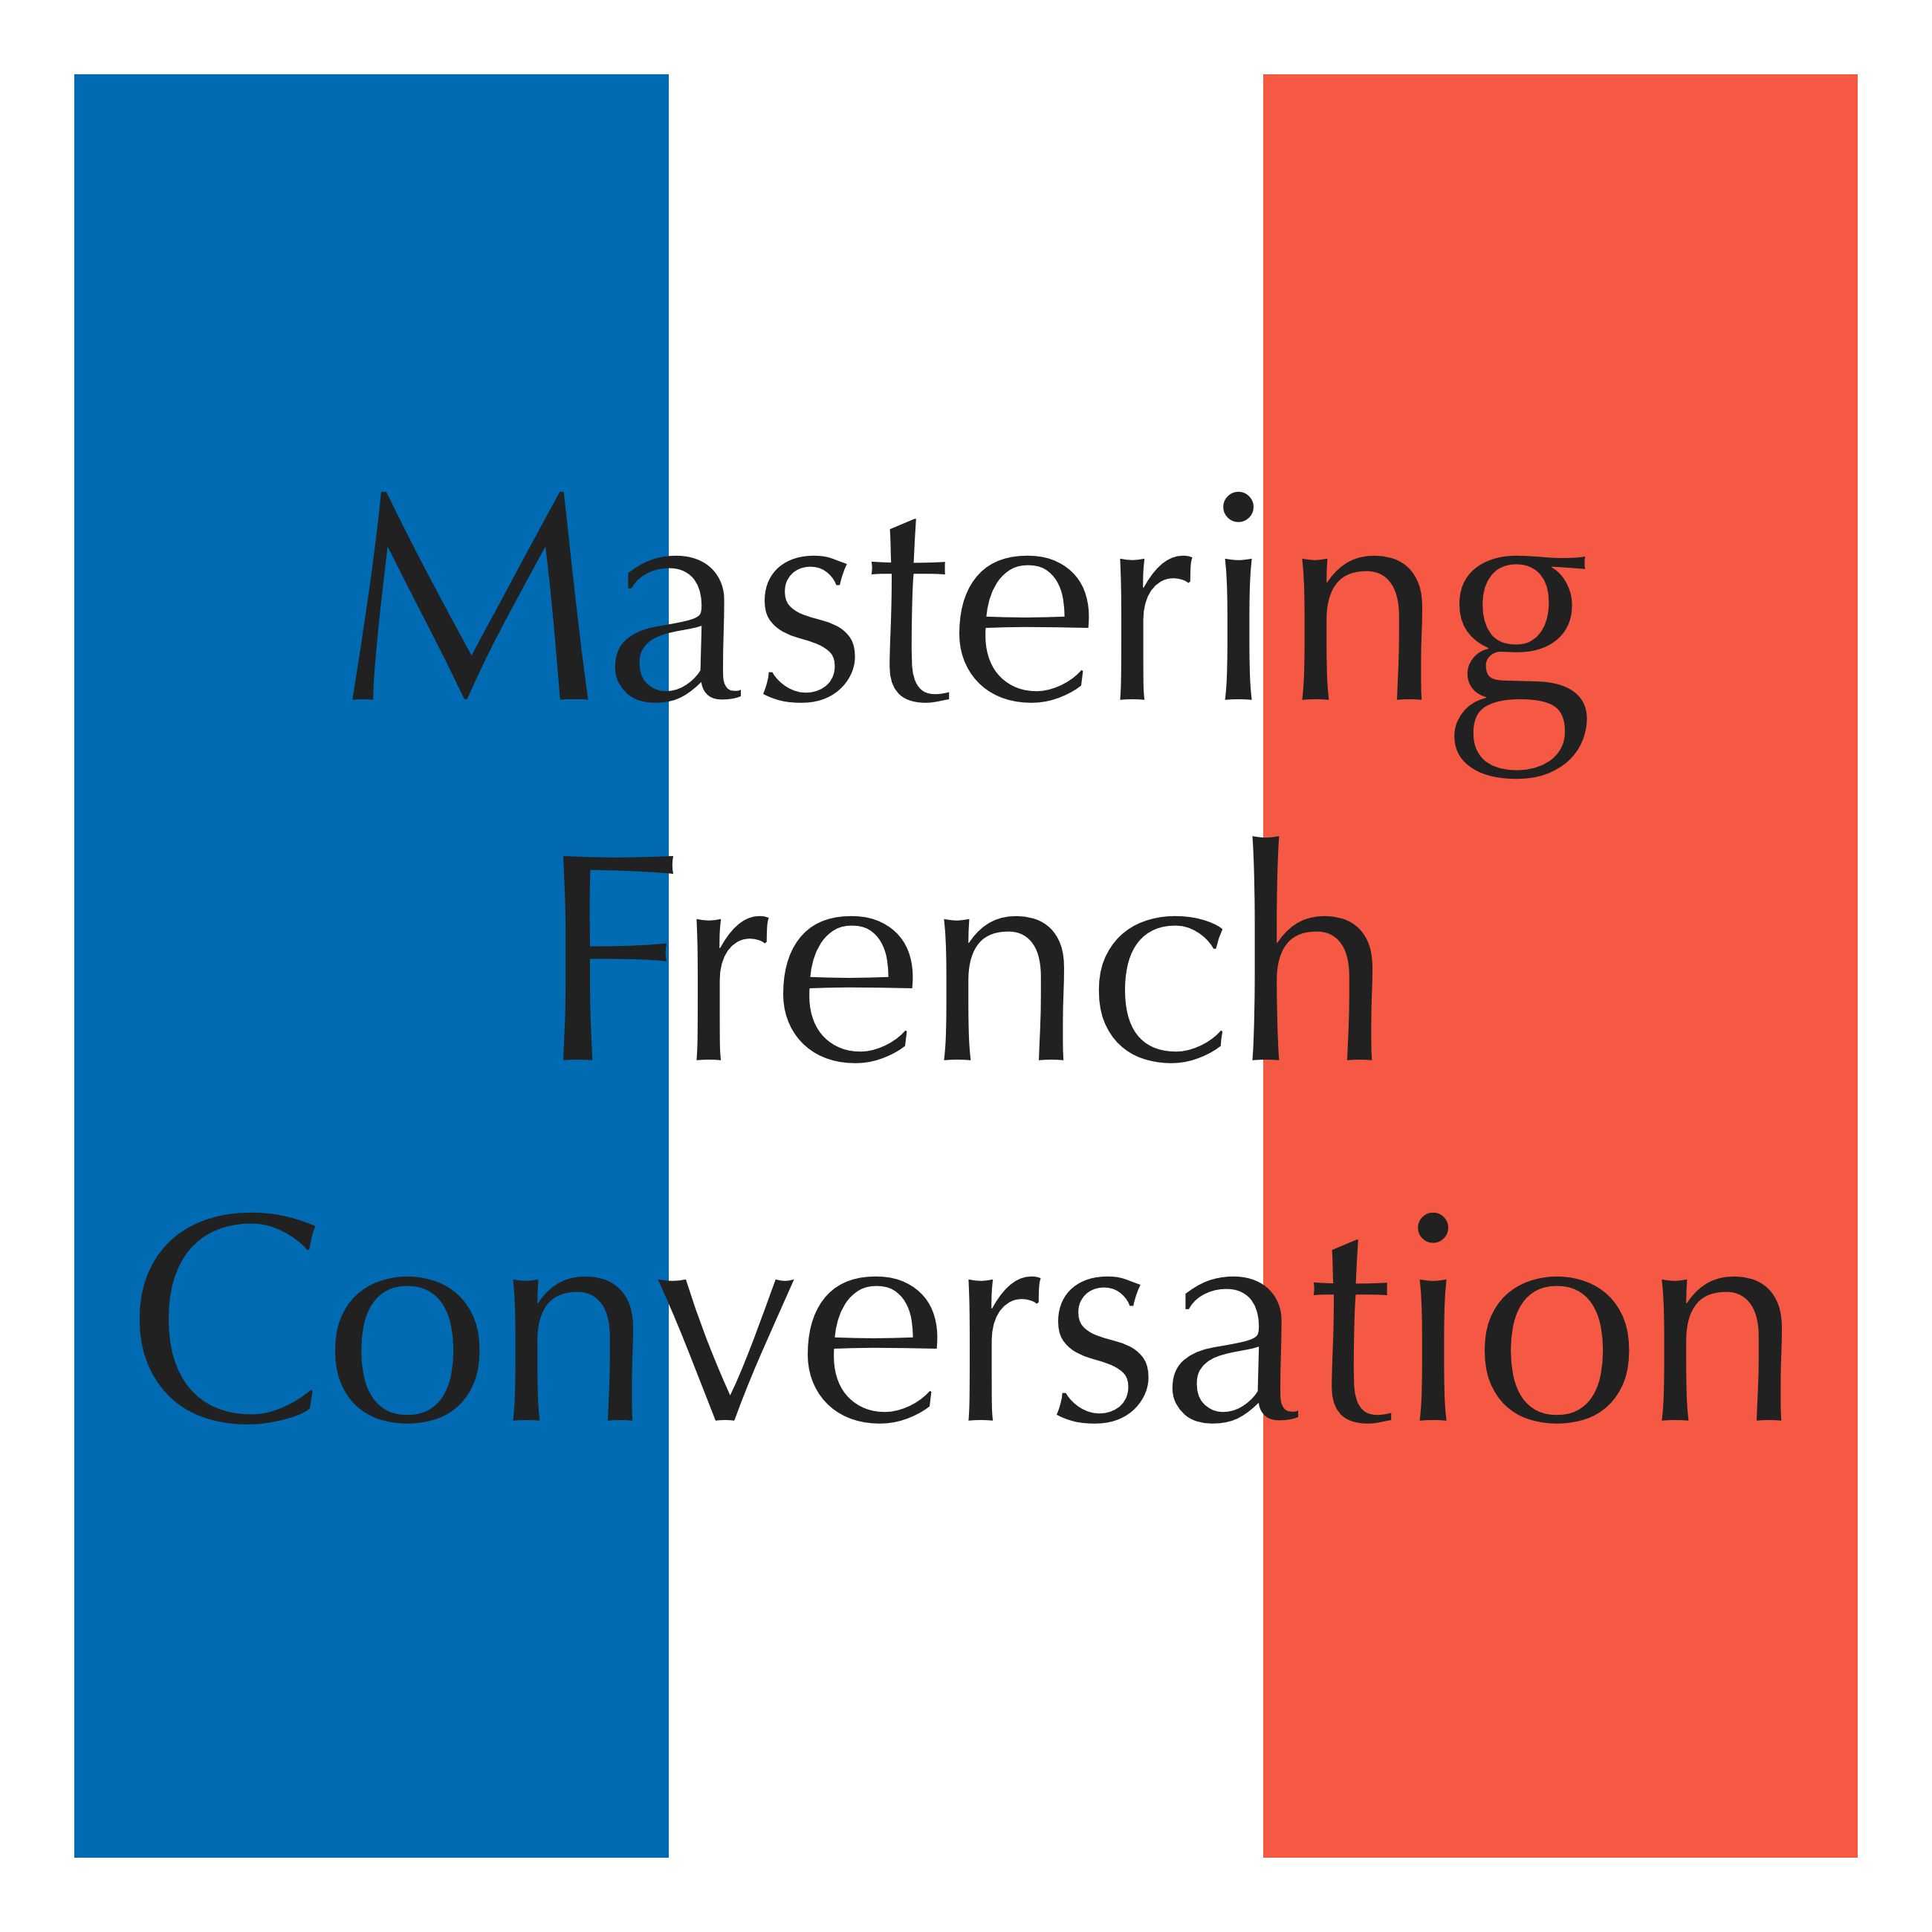 Mastering French Conversation Unit 2 (excerpt) by Dr. Brians Languages